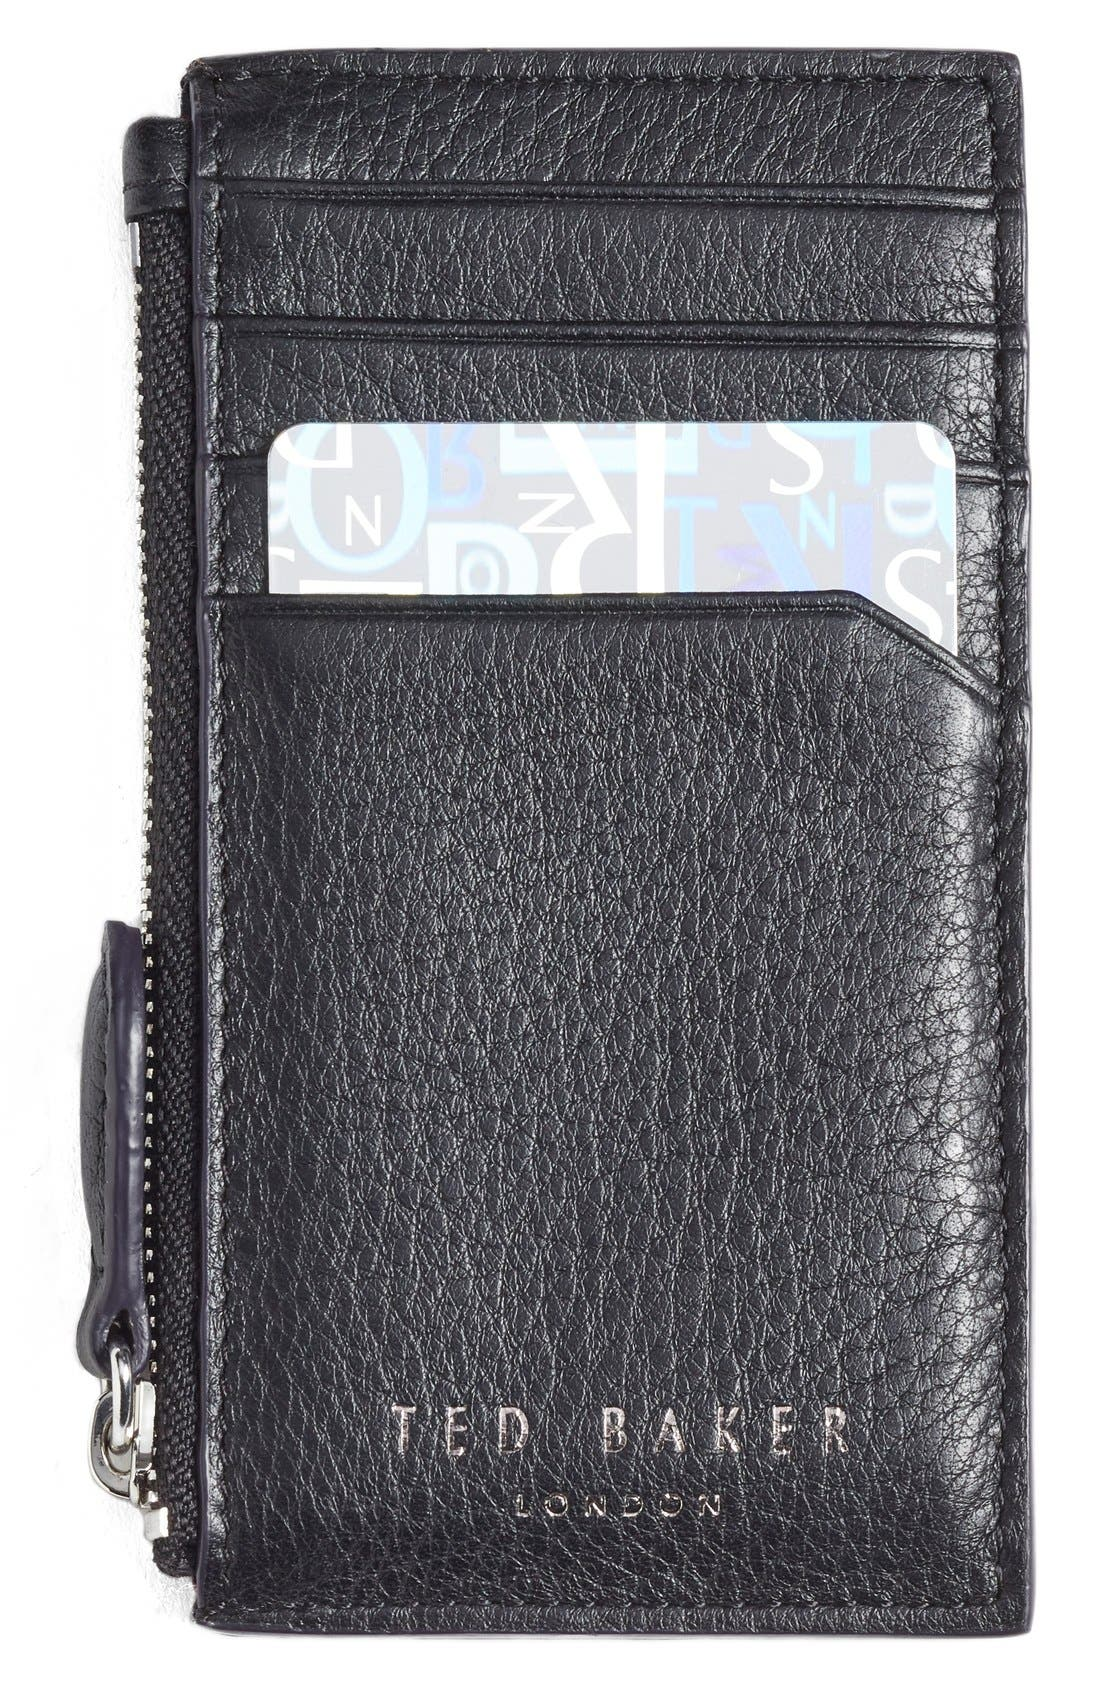 Ted Baker London 'Longzip' Card & Coin Case